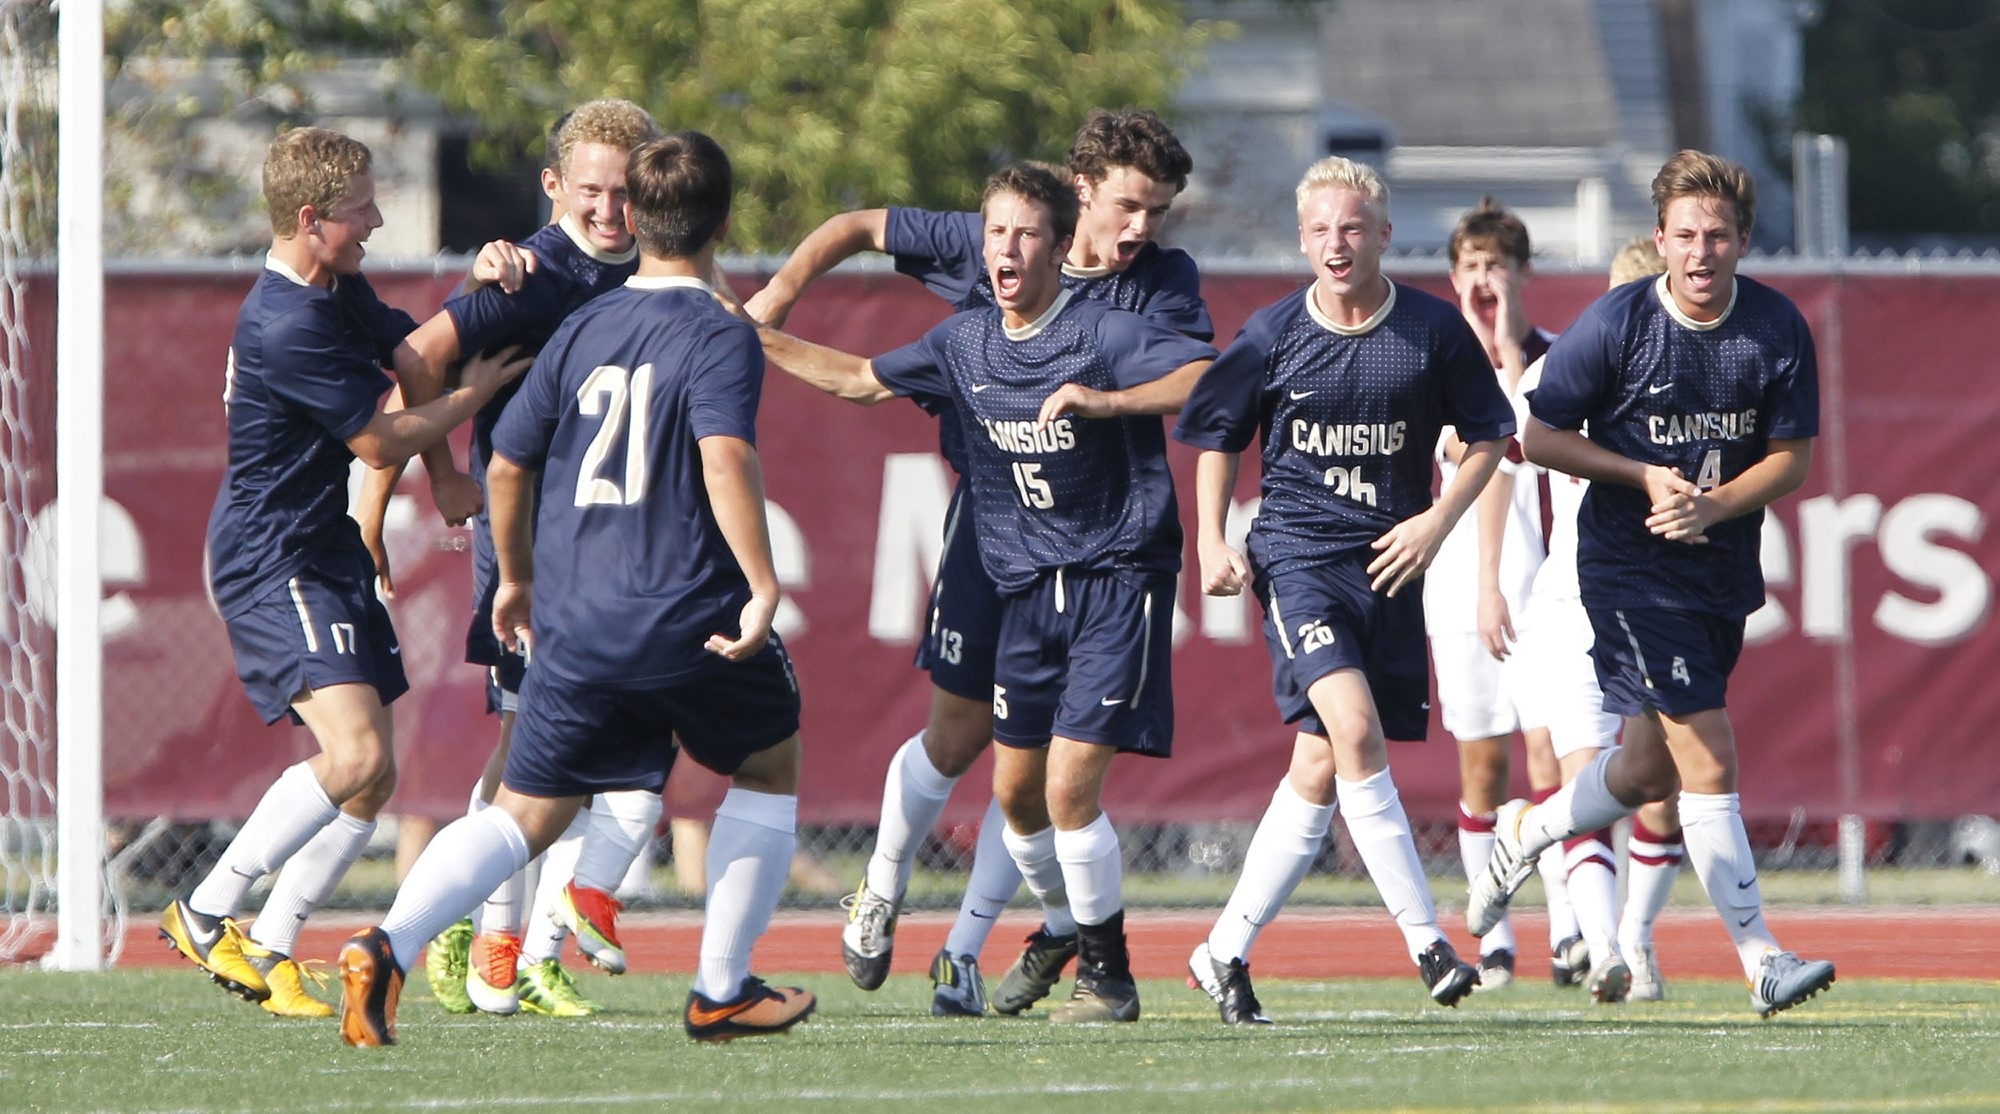 Canisius has had plenty to celebrate recently, last year's Catholic state title and this year's win over rival St. Joe's (above).